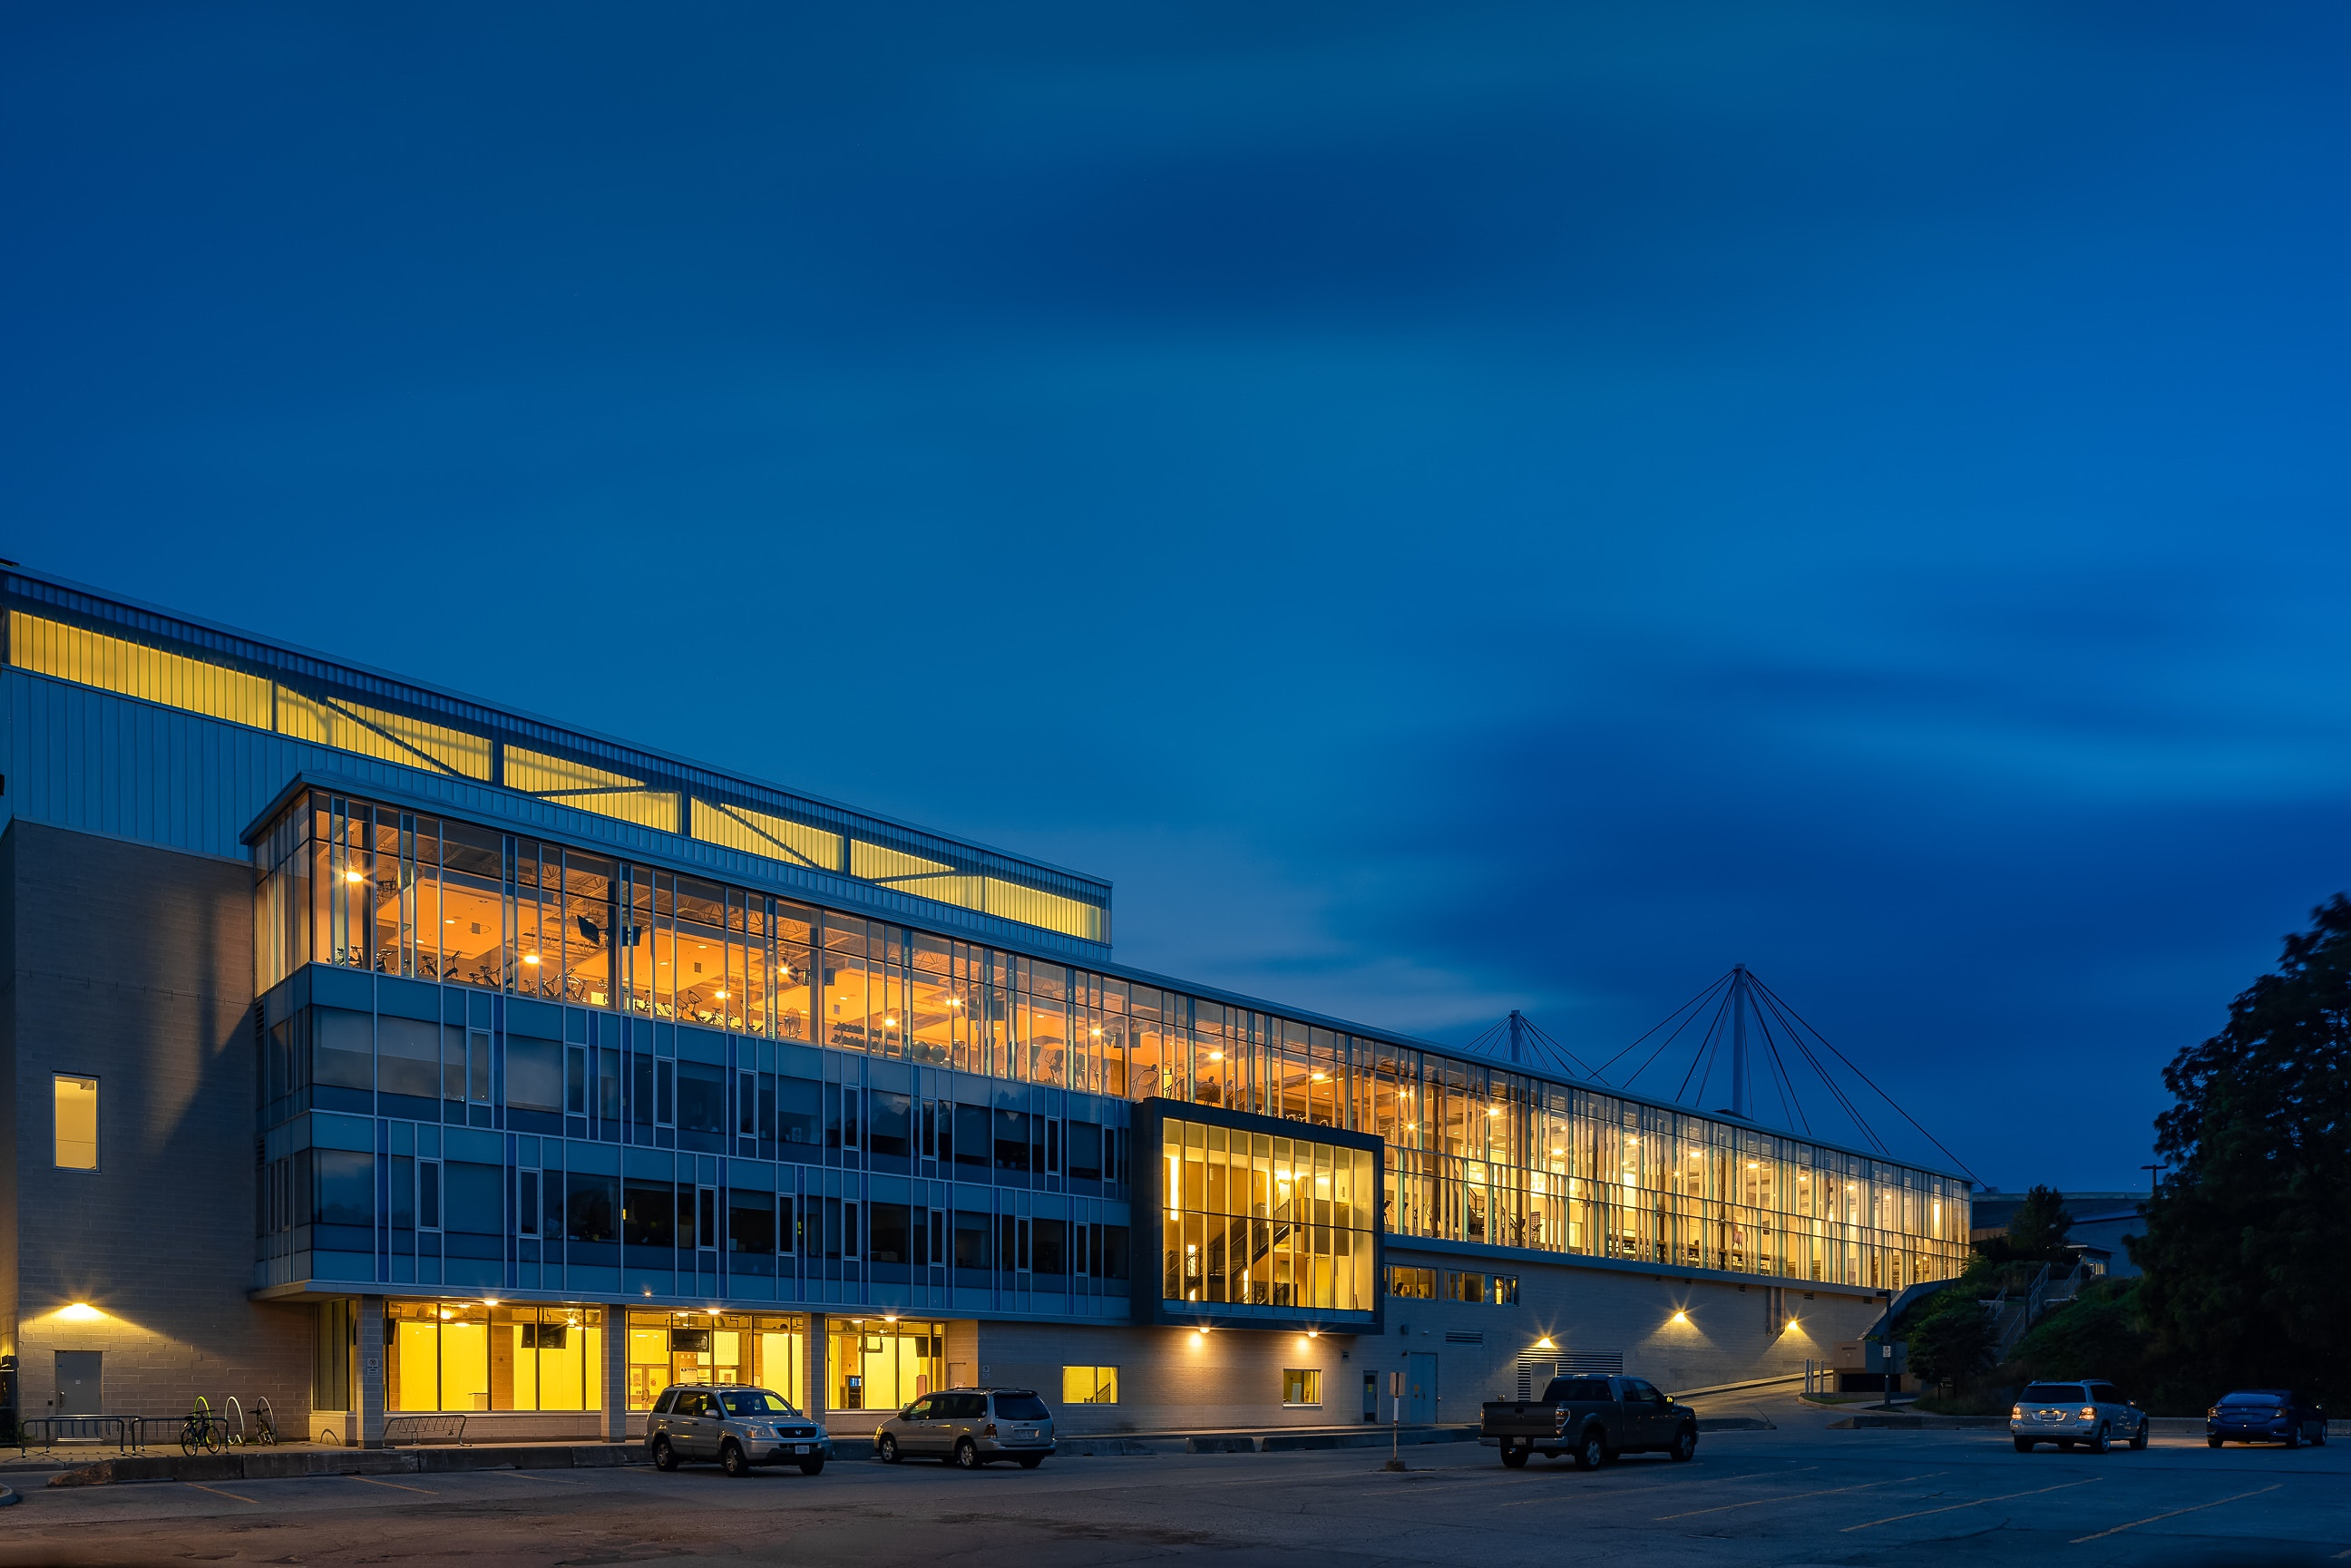 Twilight of The Western Student Recreation Center - Night photo by Scott Webb